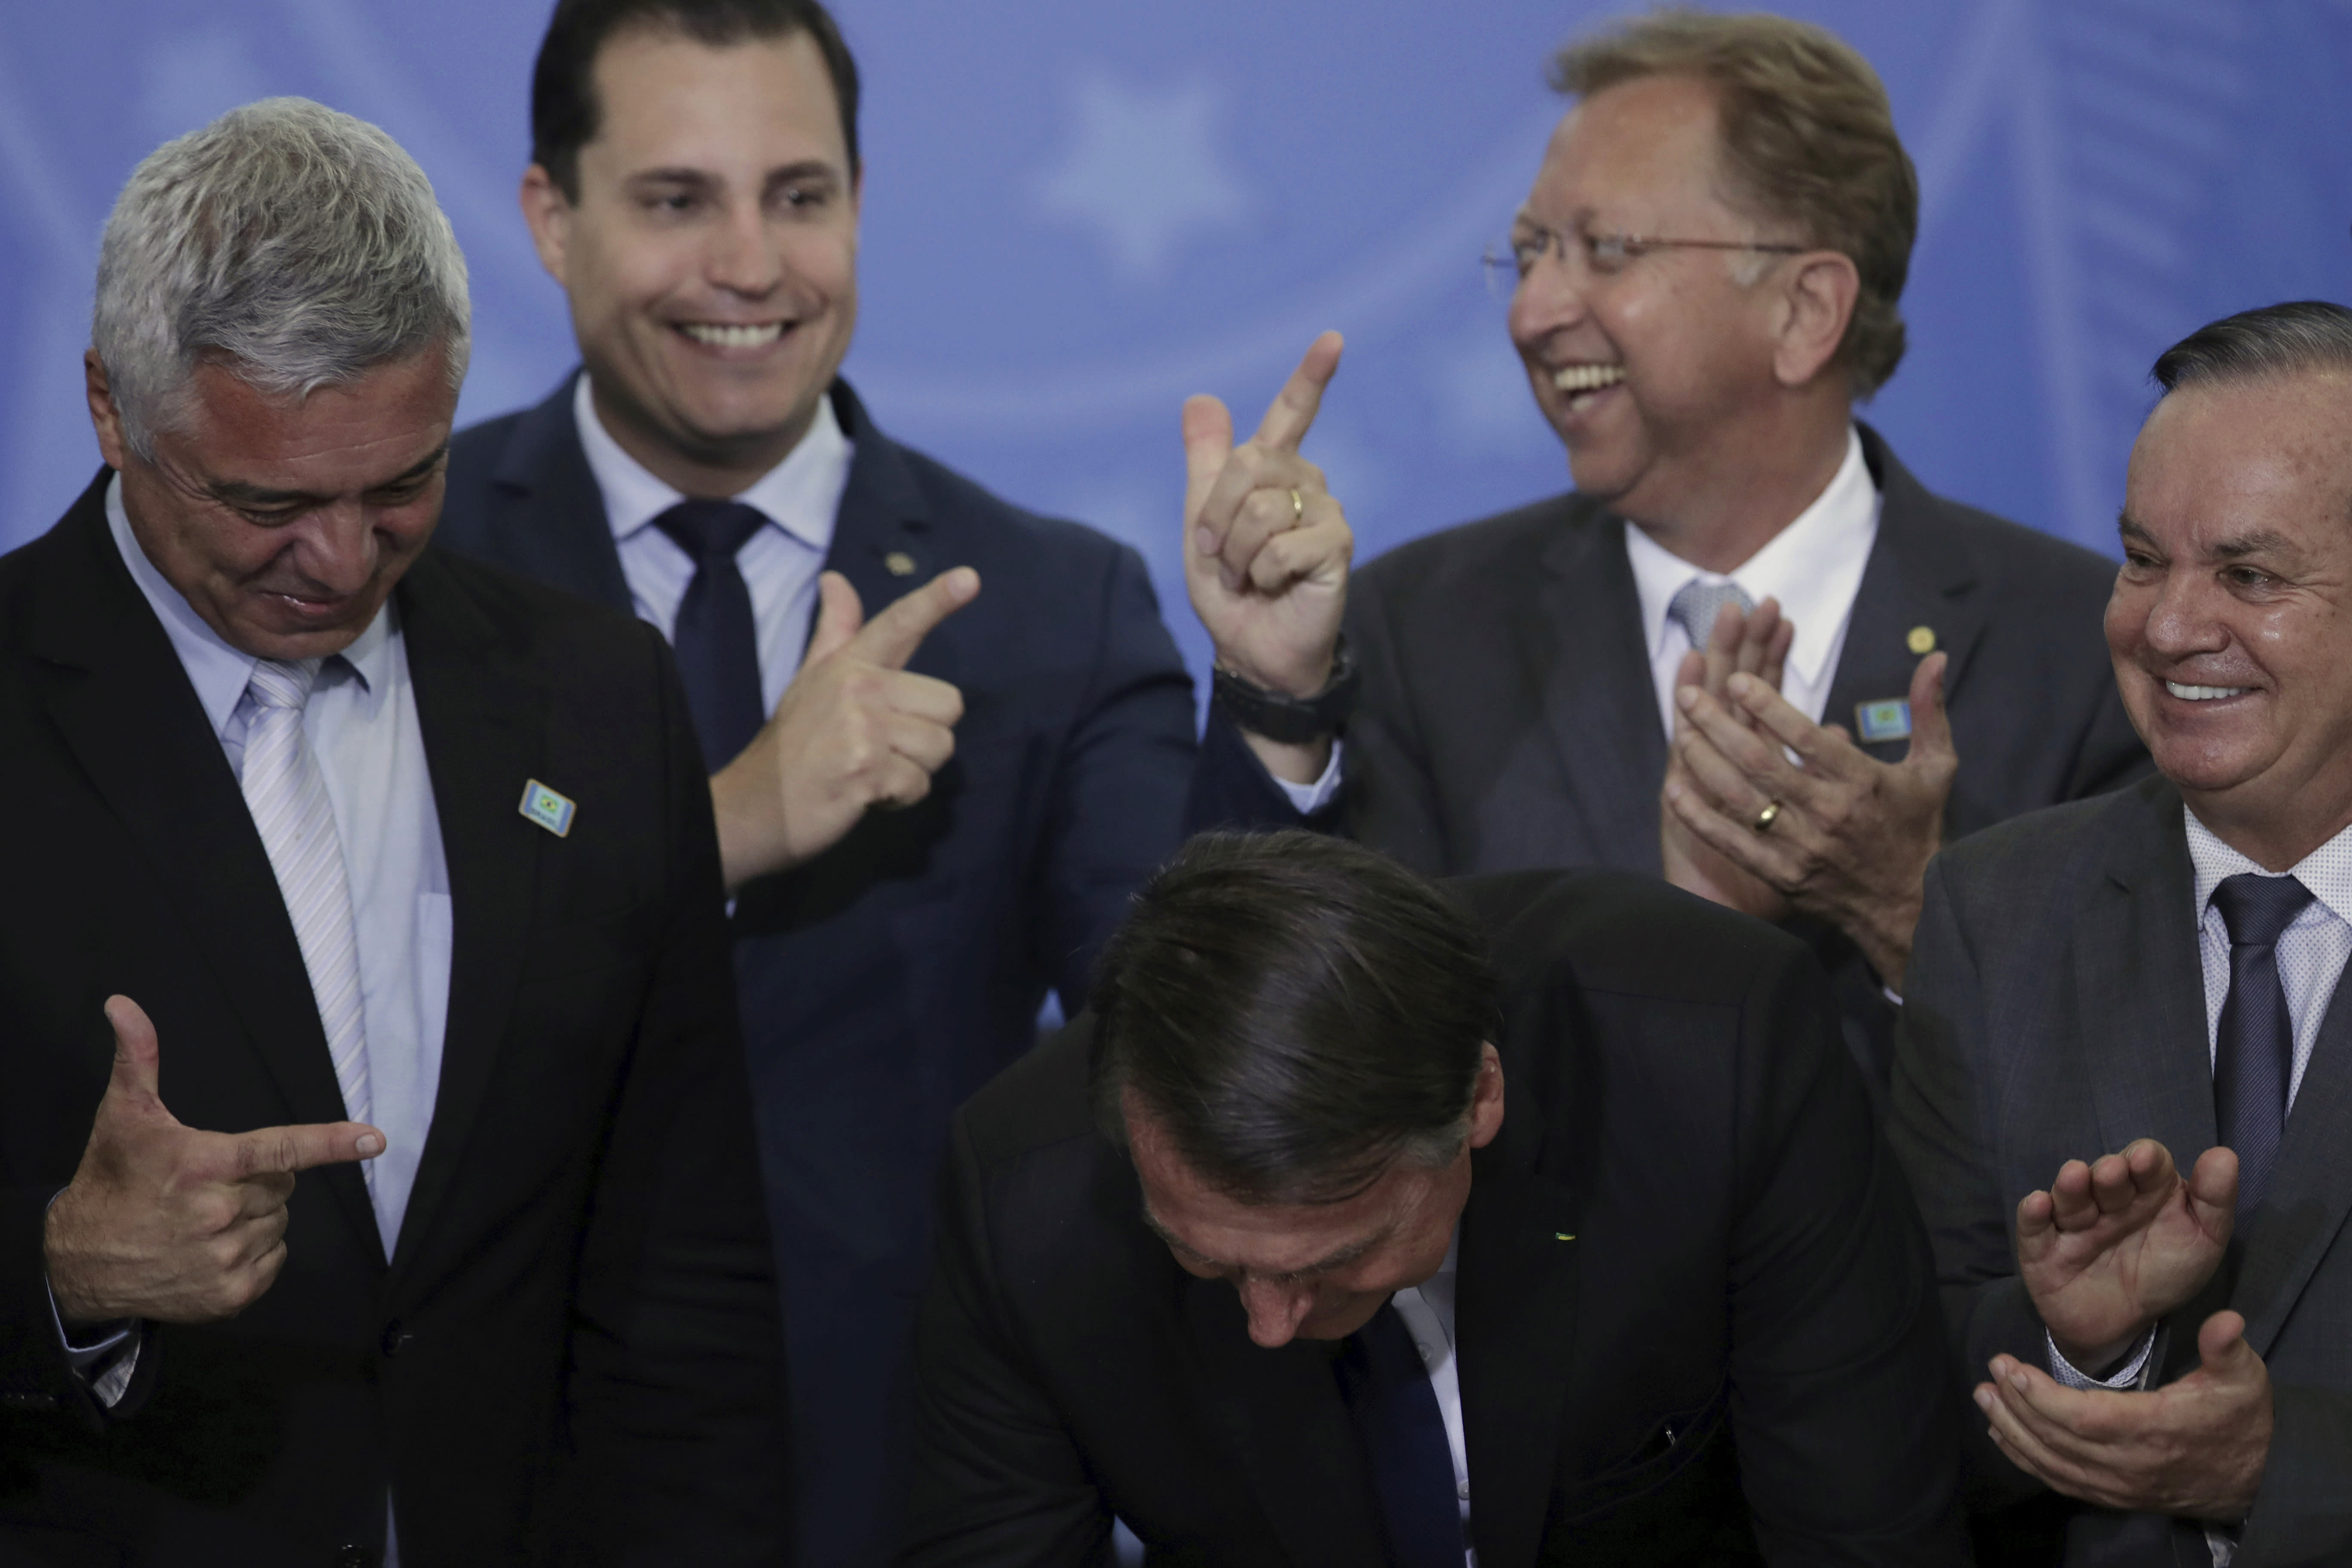 Lawmakers make finger-gun hand gestures as Brazil's President Jair Bolsonaro signs a second decree that eases gun restrictions, at Planalto presidential palace in Brasilia, Brazil, Tuesday, May 7, 2019. The decree opens Brazil's market to guns and ammunition made outside of Brazil according to a summary of the decree. Gun owners can now buy between 1,000 -5,000 rounds of ammunition per year depending on their license, up from 50 rounds. Lower-ranking military members can now carry guns after 10 years of service. (AP Photo/Eraldo Peres)